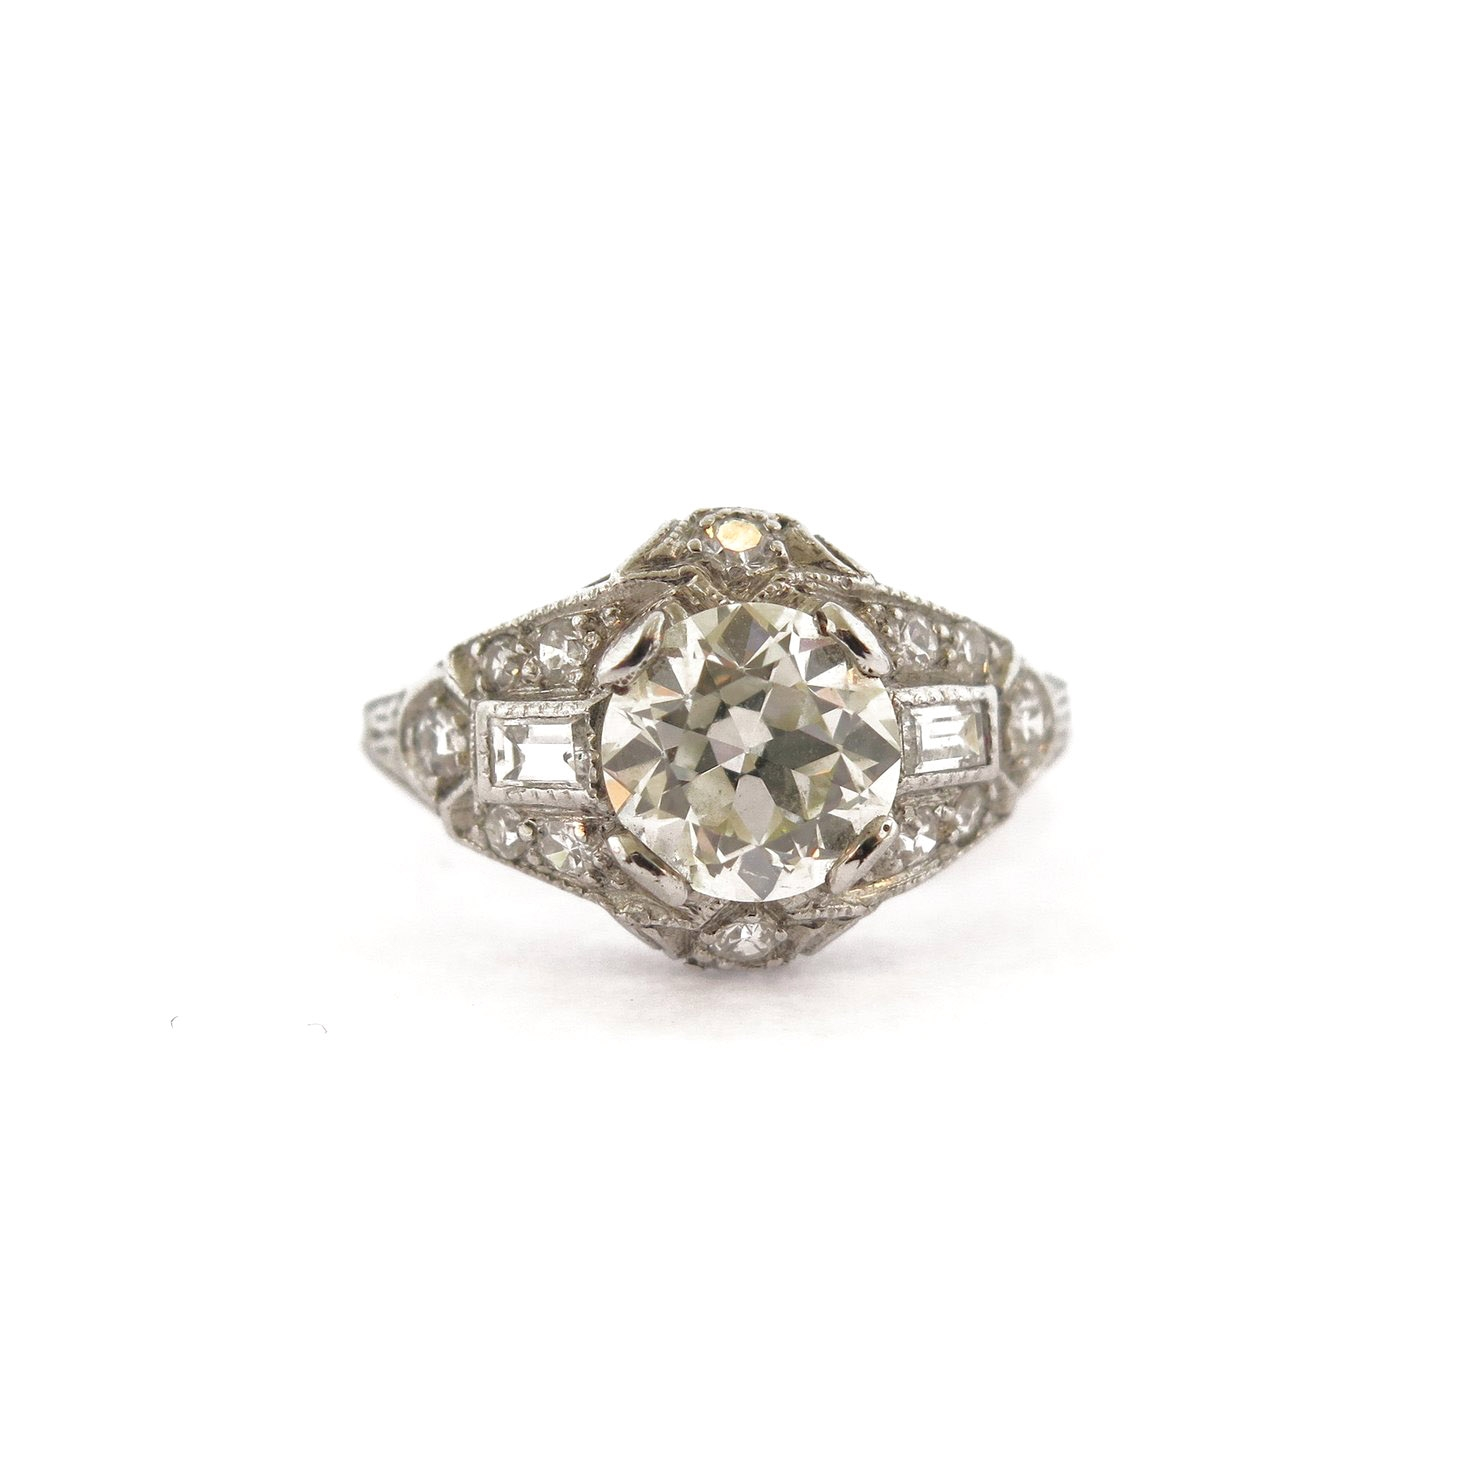 1.25 ct Diamond Ring with Baguettes